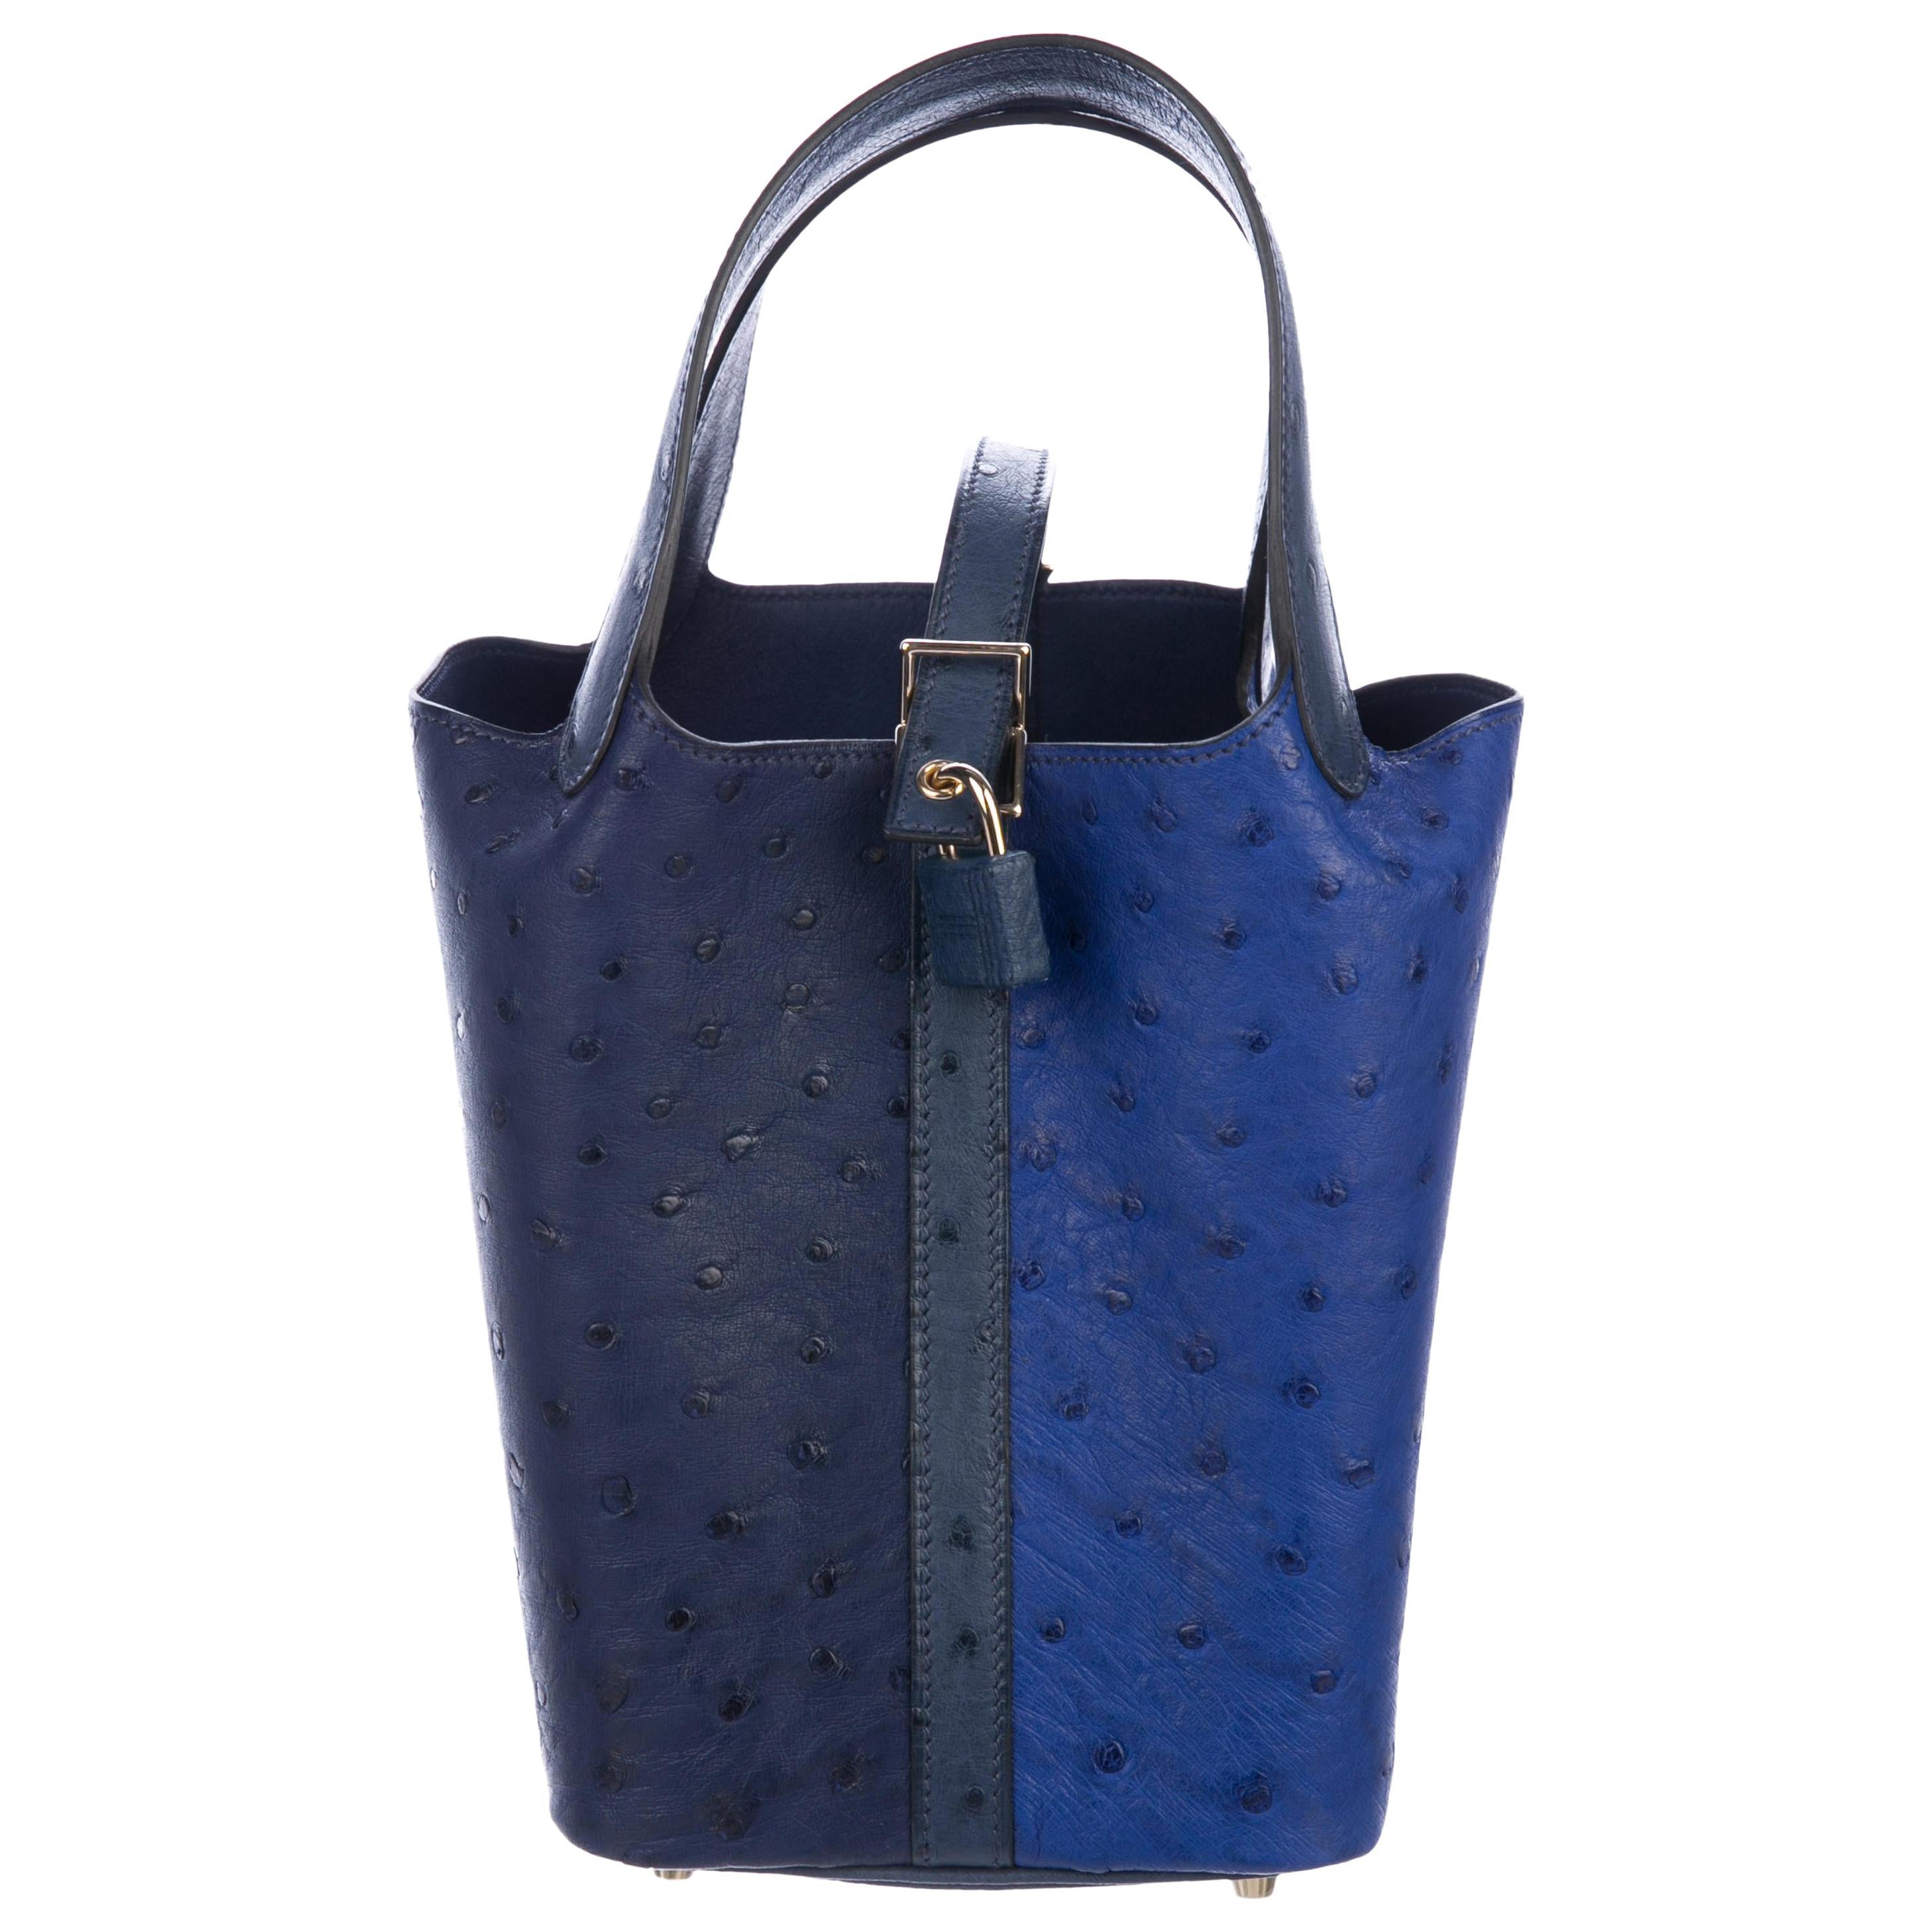 0f367b7ac4 ... australia hermes leather two tone blue evening small top handle bucket  satchel bag in box 0f321